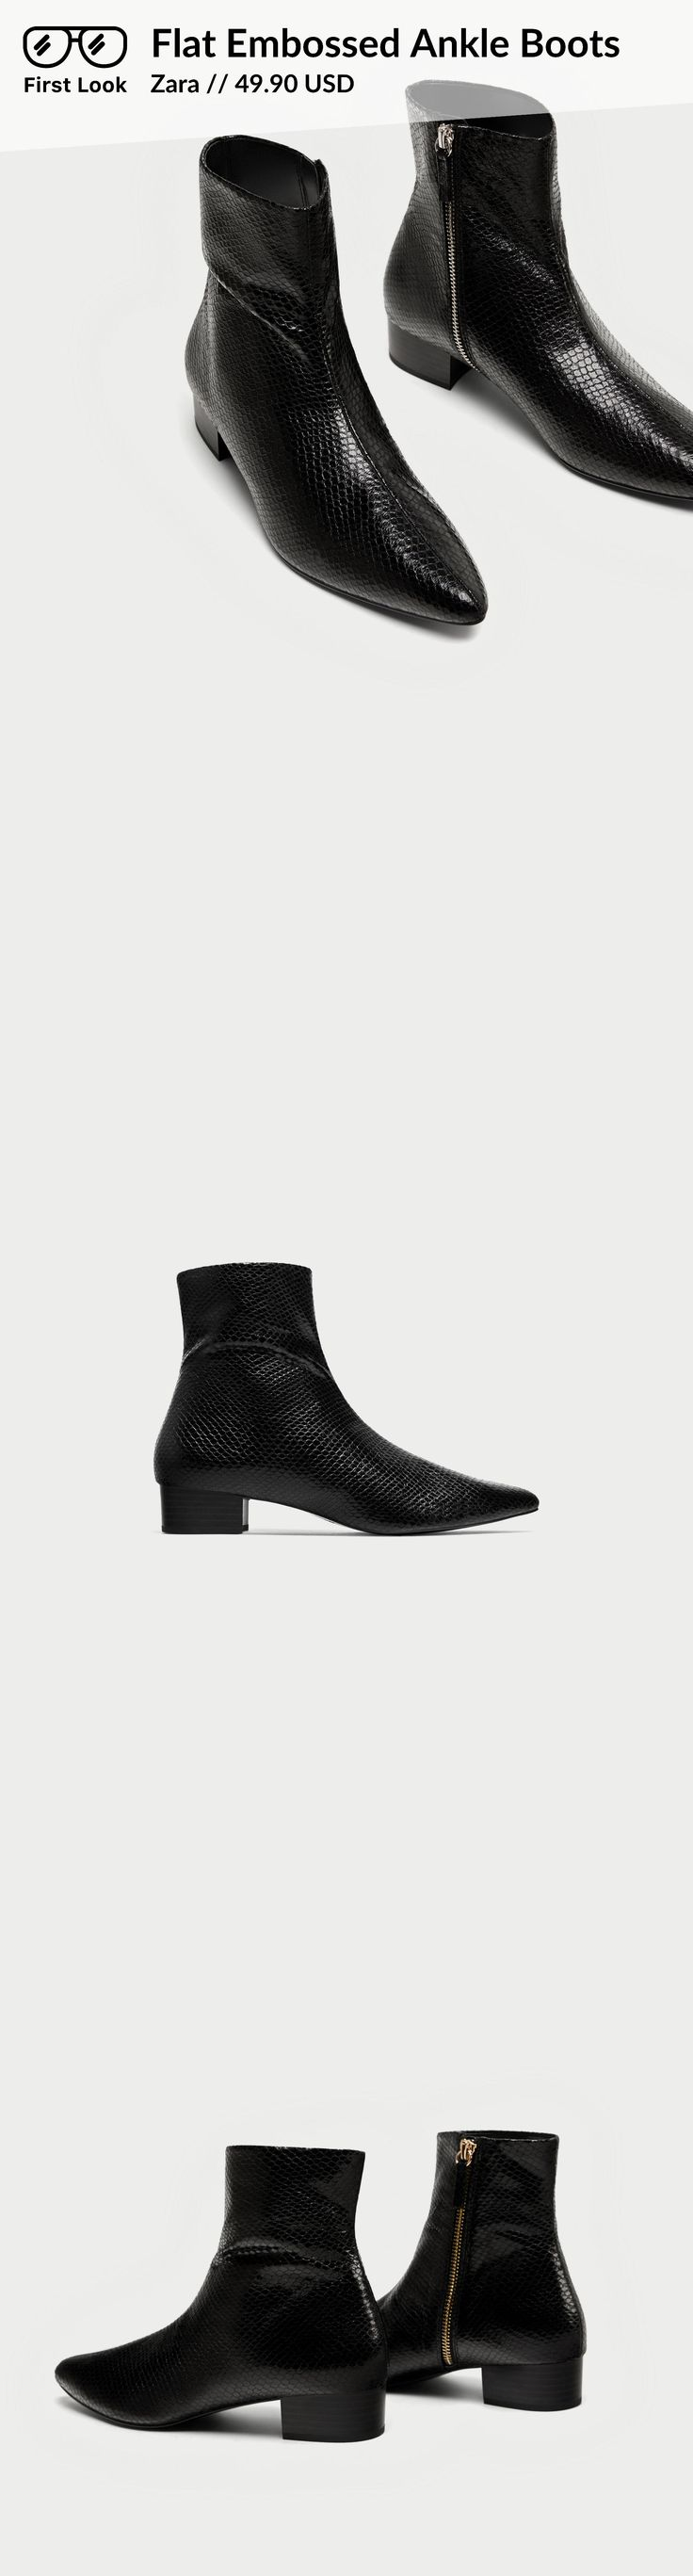 Flat Embossed Ankle Boots // 49.90 USD // Zara // Flat, black ankle boots with animal embossing. Featuring side zip fastening and pointed toes. Heel height of 2,7 cm. / 1.0″